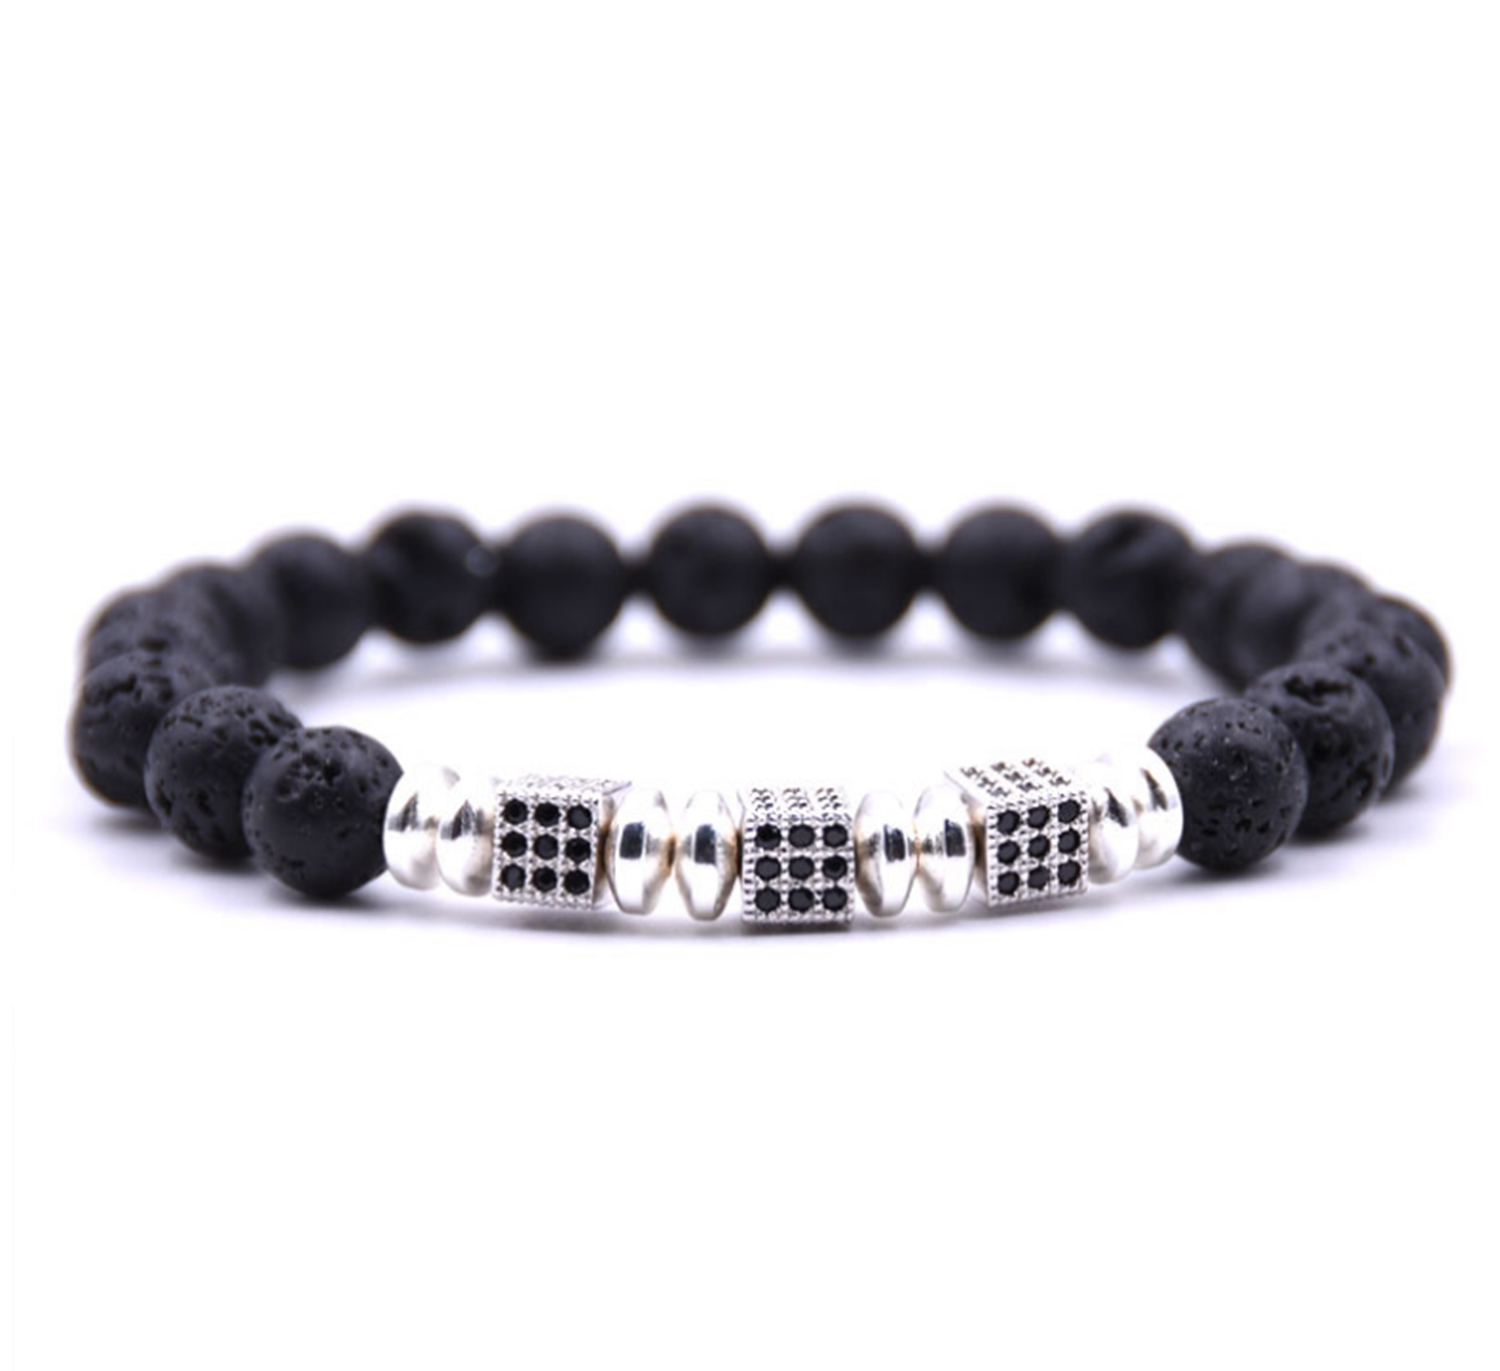 Essential Oil Lava Stone Diffusing Bracelet Aromatherapy Natural & Alternative Remedies Aromatherapy Jewellery With Gems.